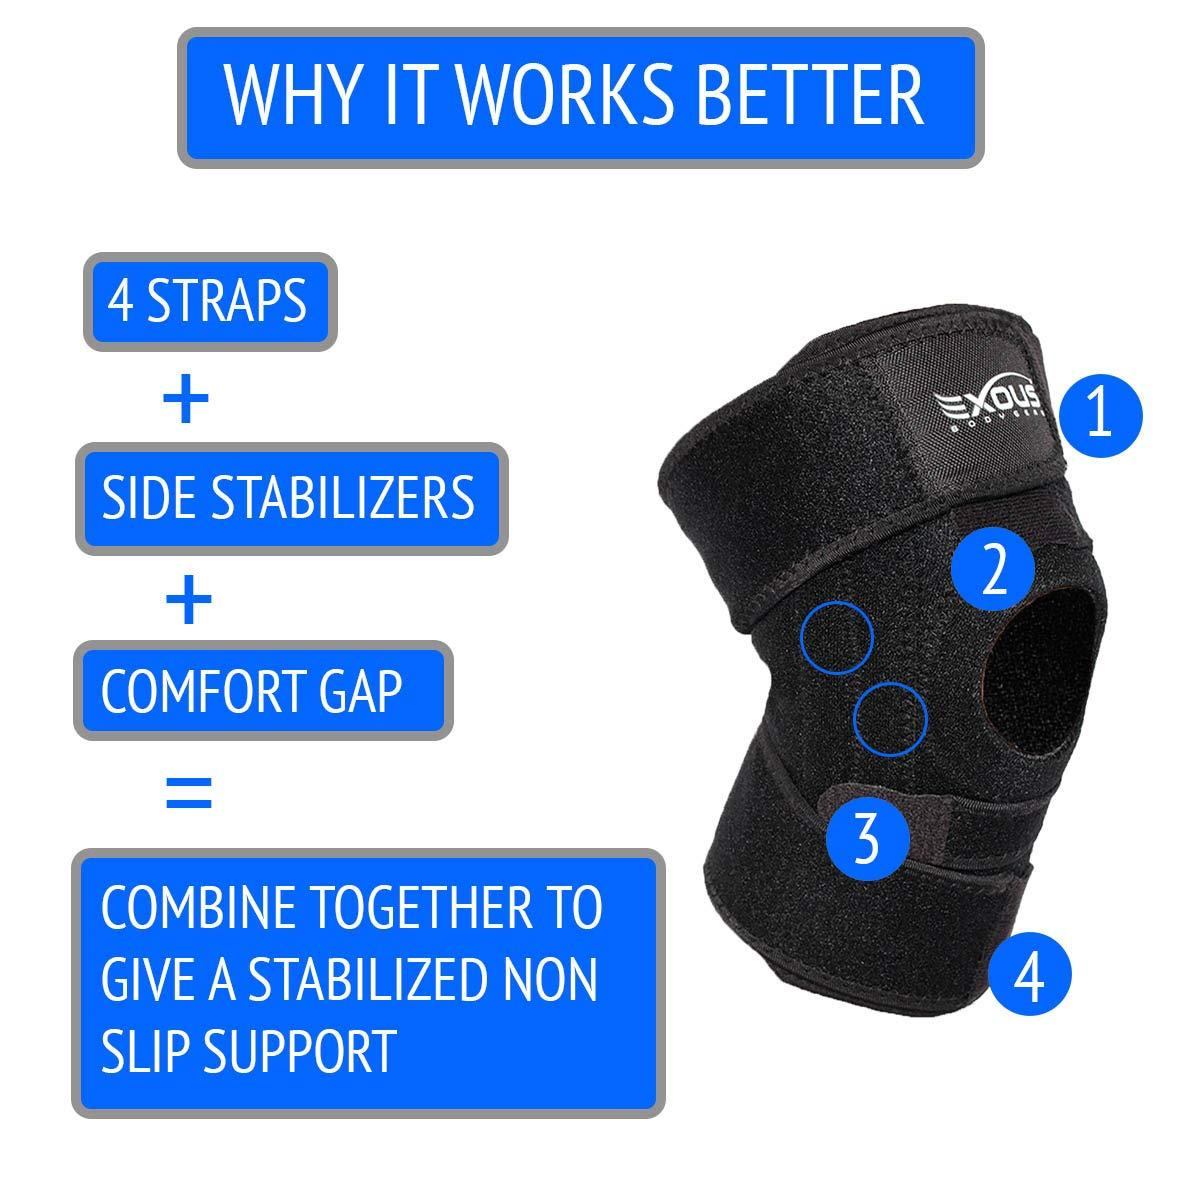 20a724564b EXOUS Knee Brace Support Protector - Relieves Patella Tendonitis - Jumpers  Knee Mensicus Tear - Sport